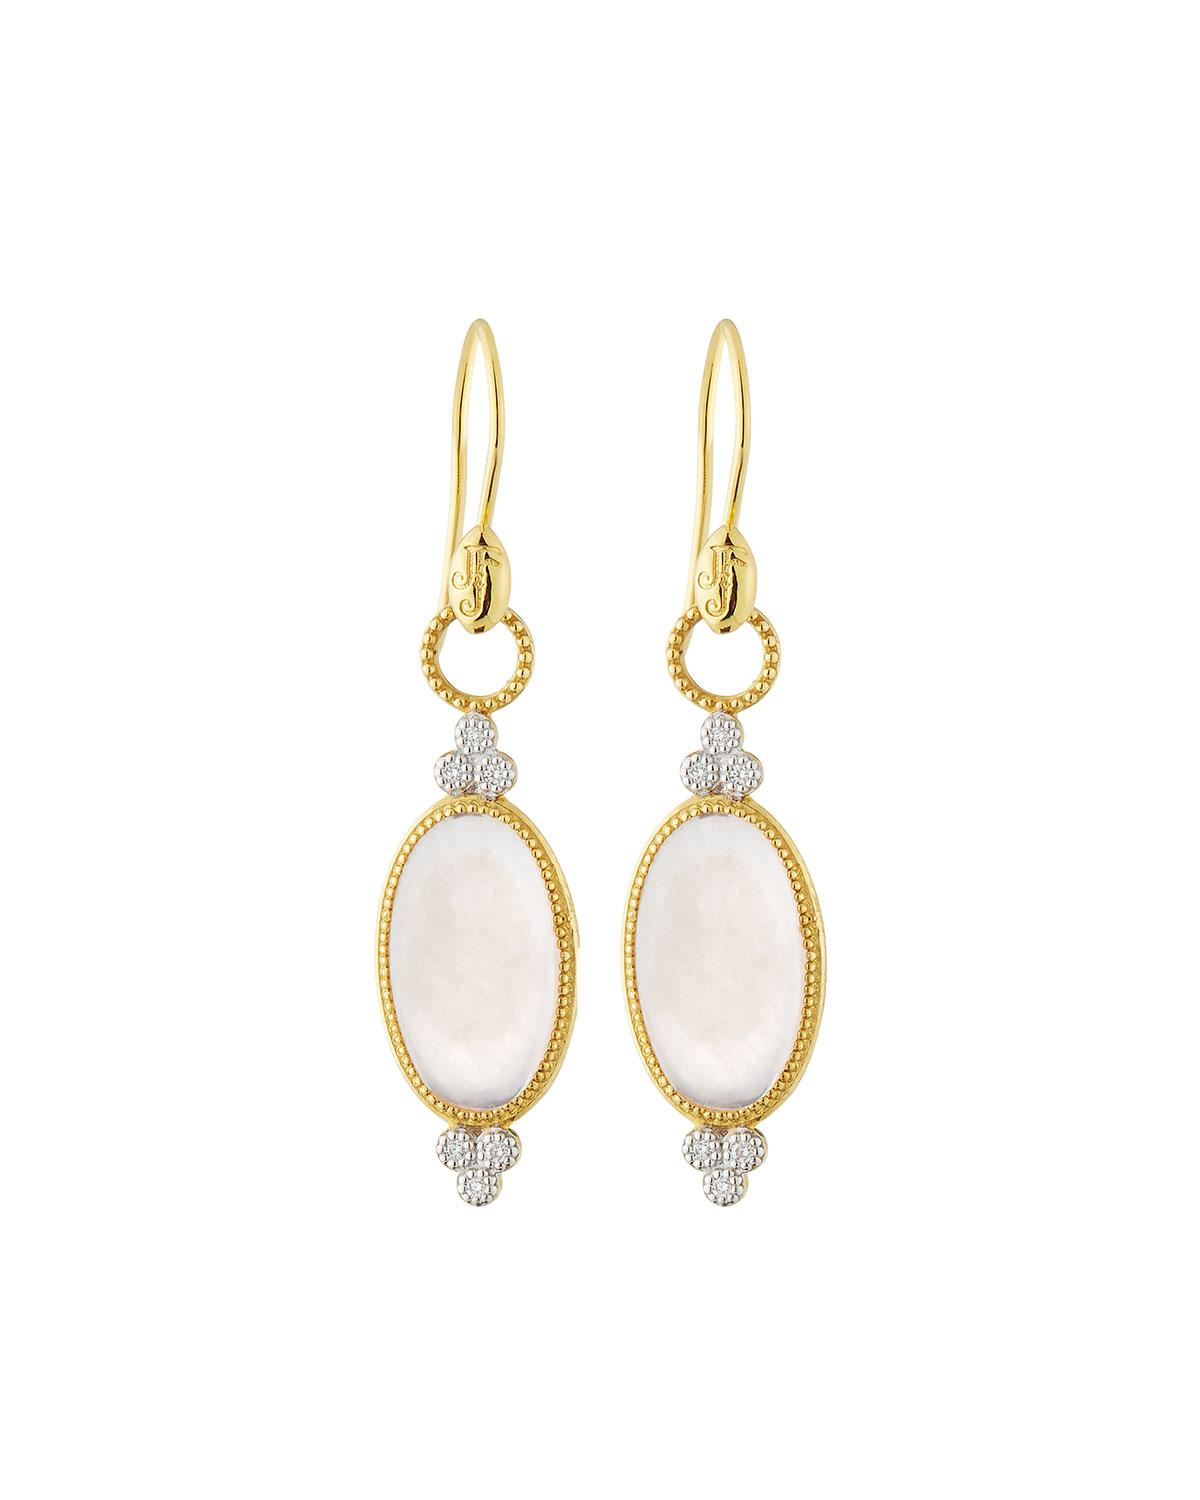 Jude Frances Provence Pearl Drop Earrings in 18K Rose Gold EmElop